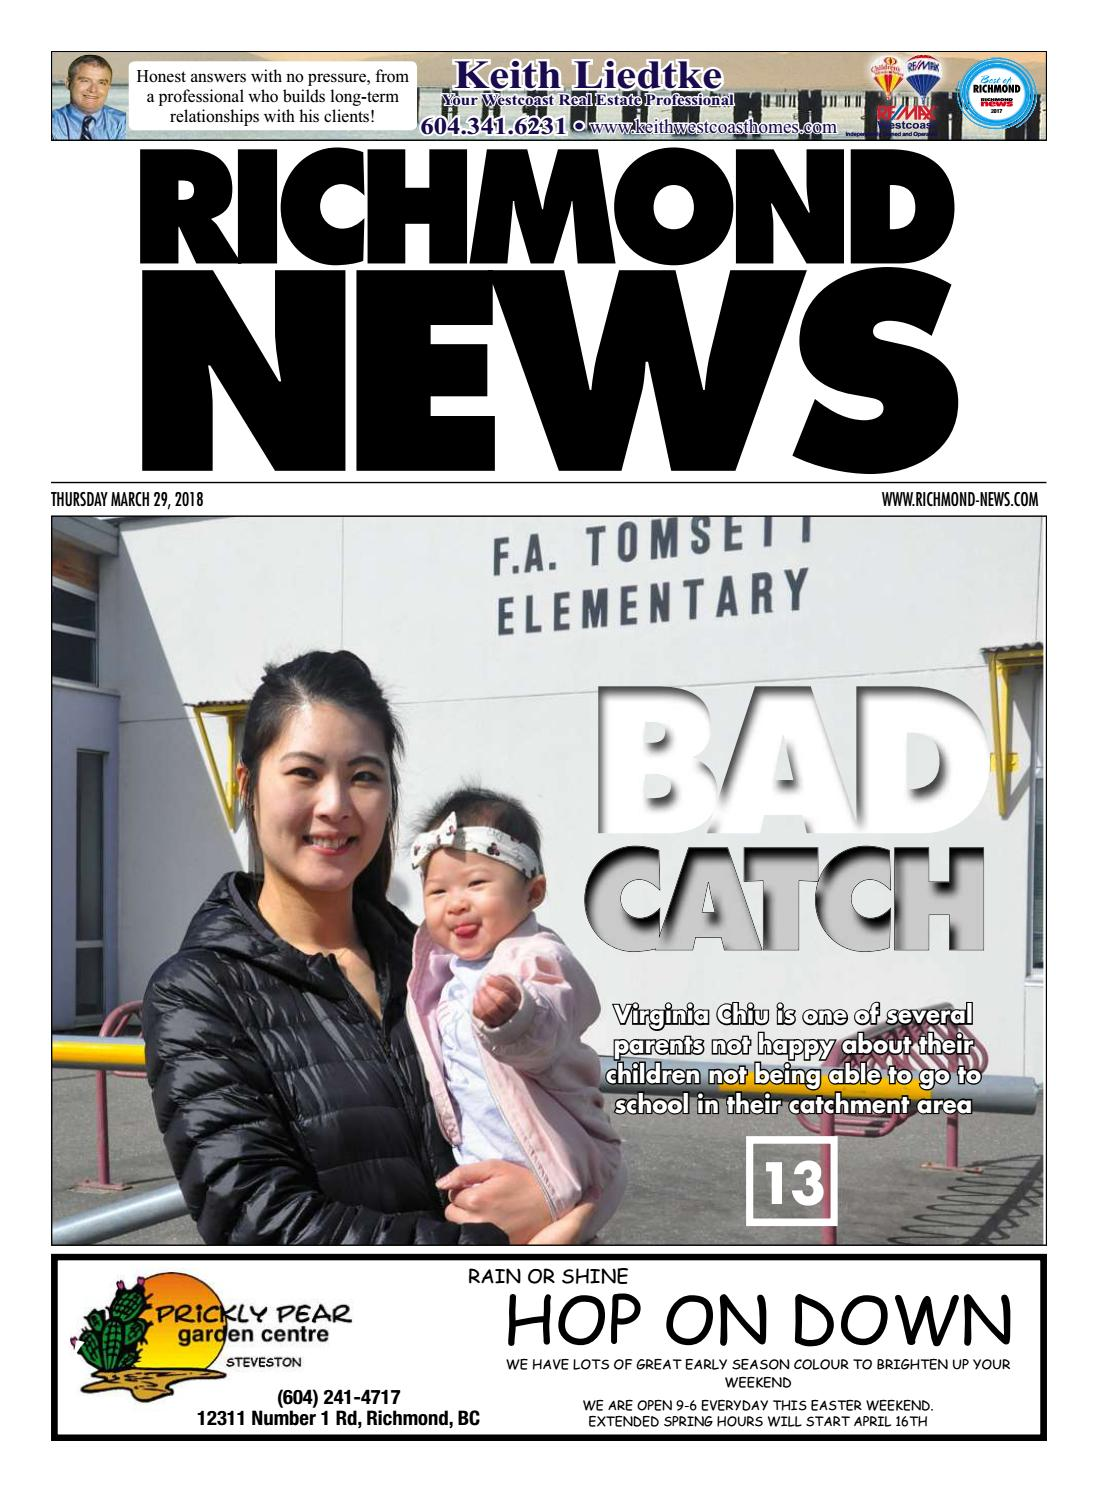 La Cucina Richmond Bc Richmond News March 29 2018